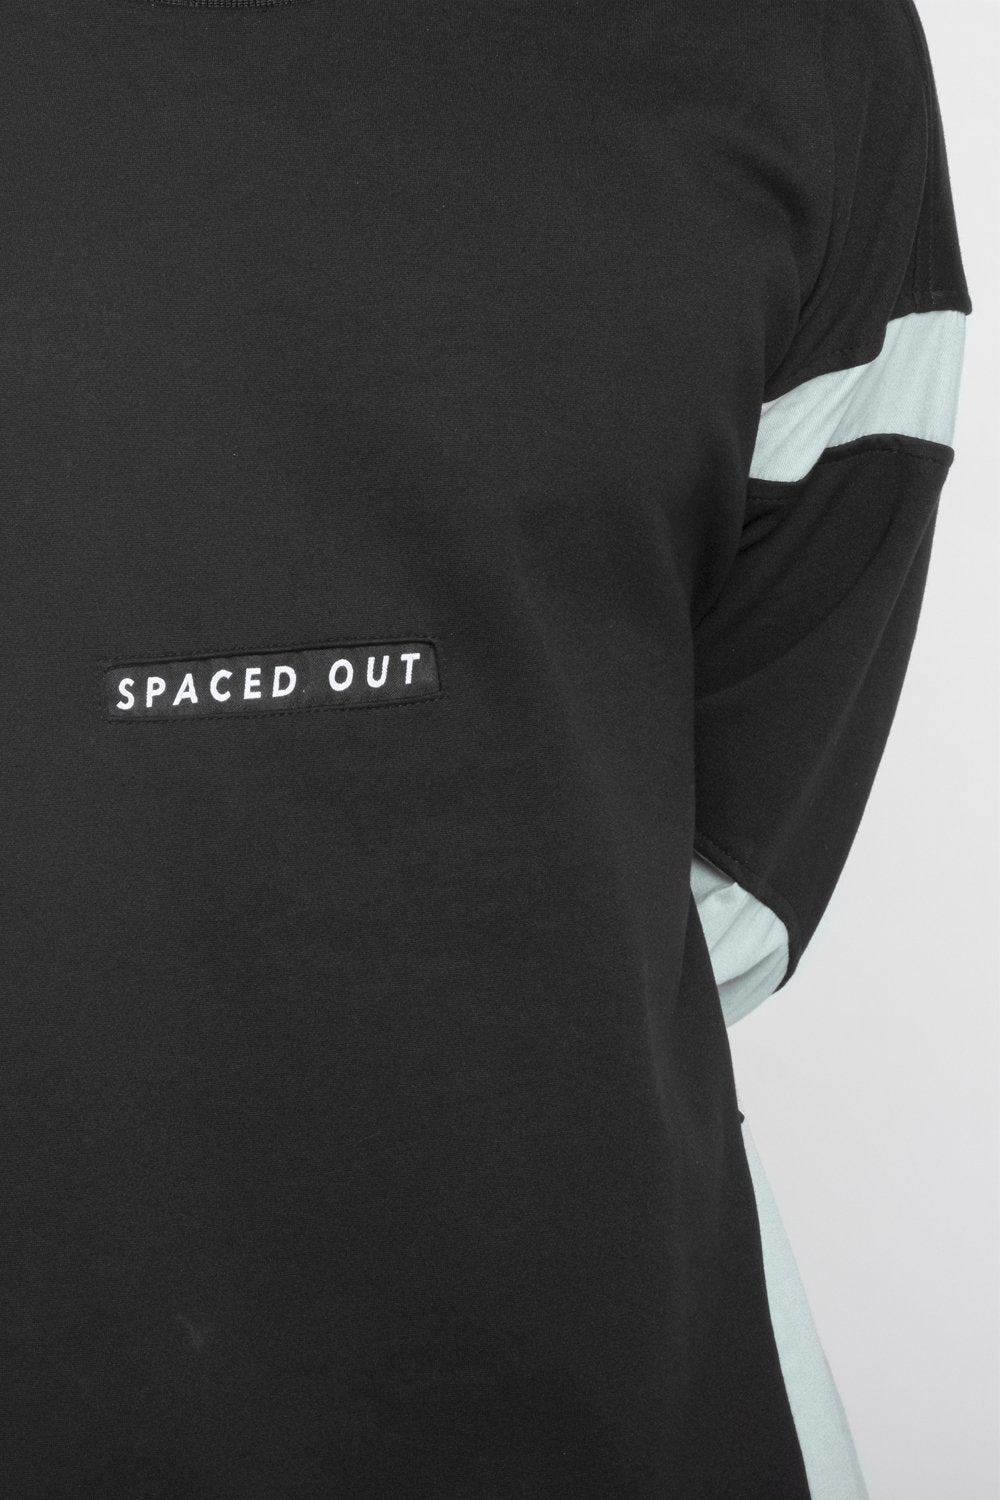 Black Unisex Sweatshirt wit orbit green details and spaced out logo.  Designed in Madras, Made in India  | BISKIT UNISEX CLOTHING LABEL